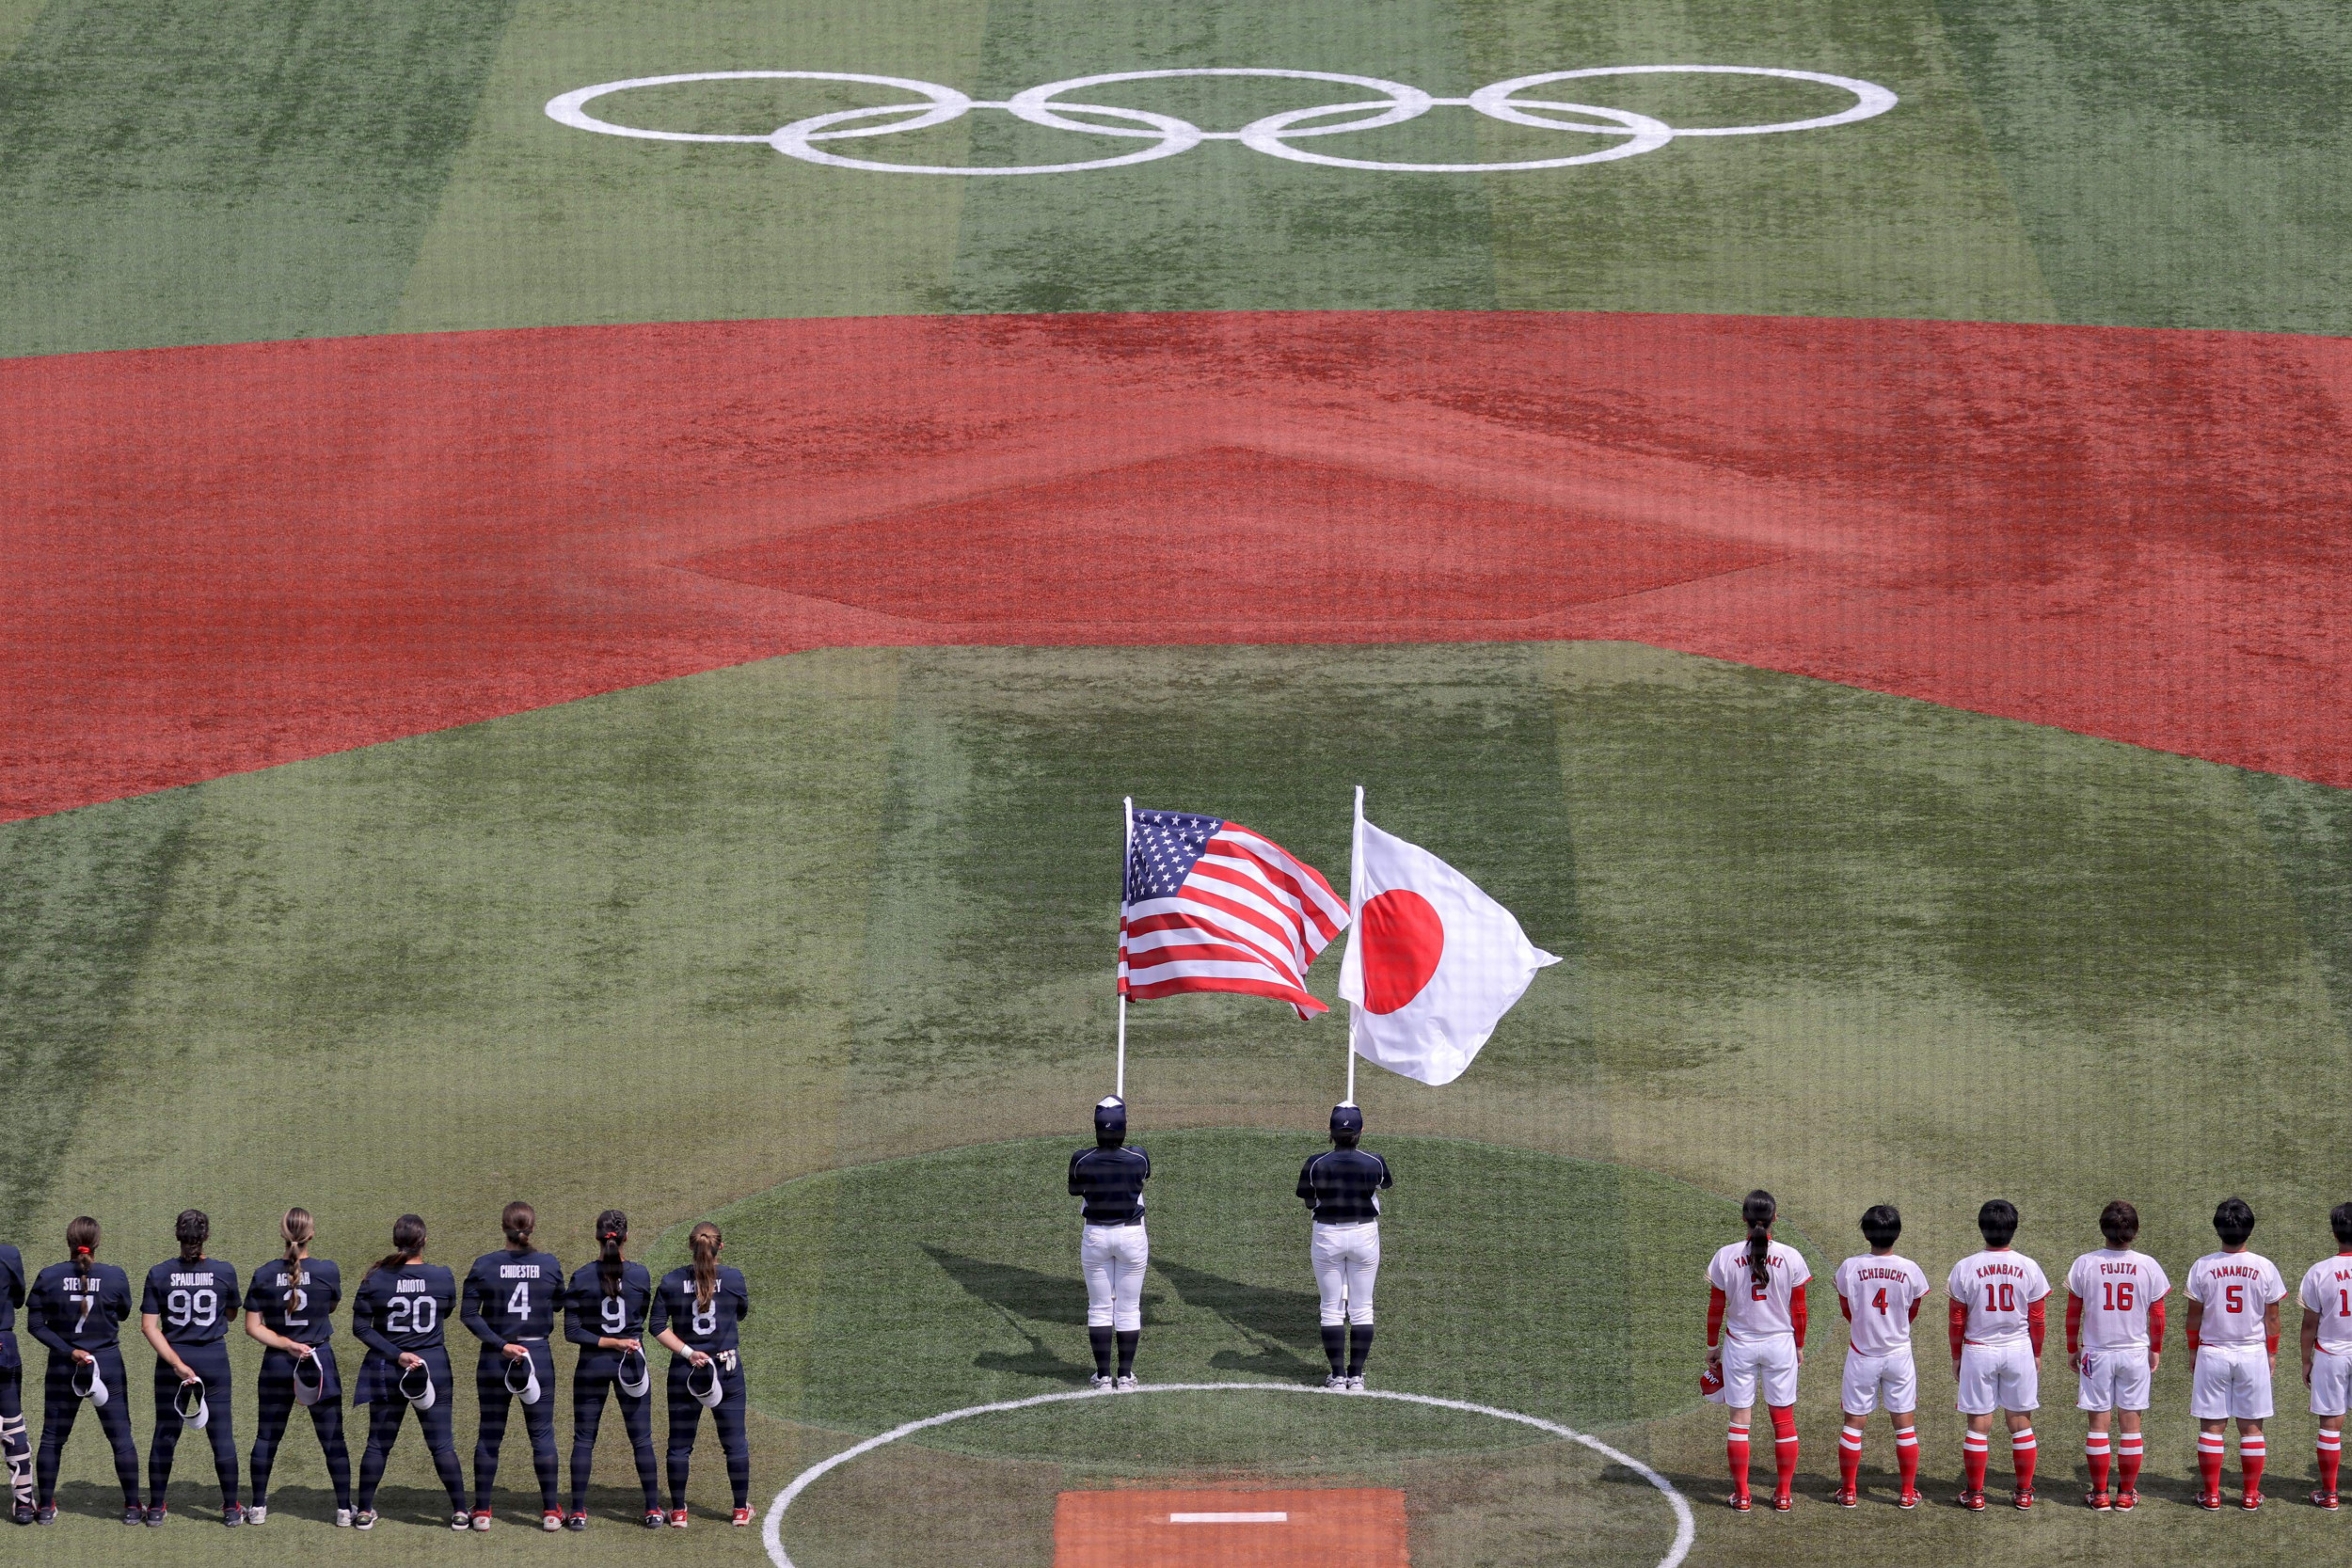 How to Watch USA vs. Japan in Softball Gold Medal Match Live